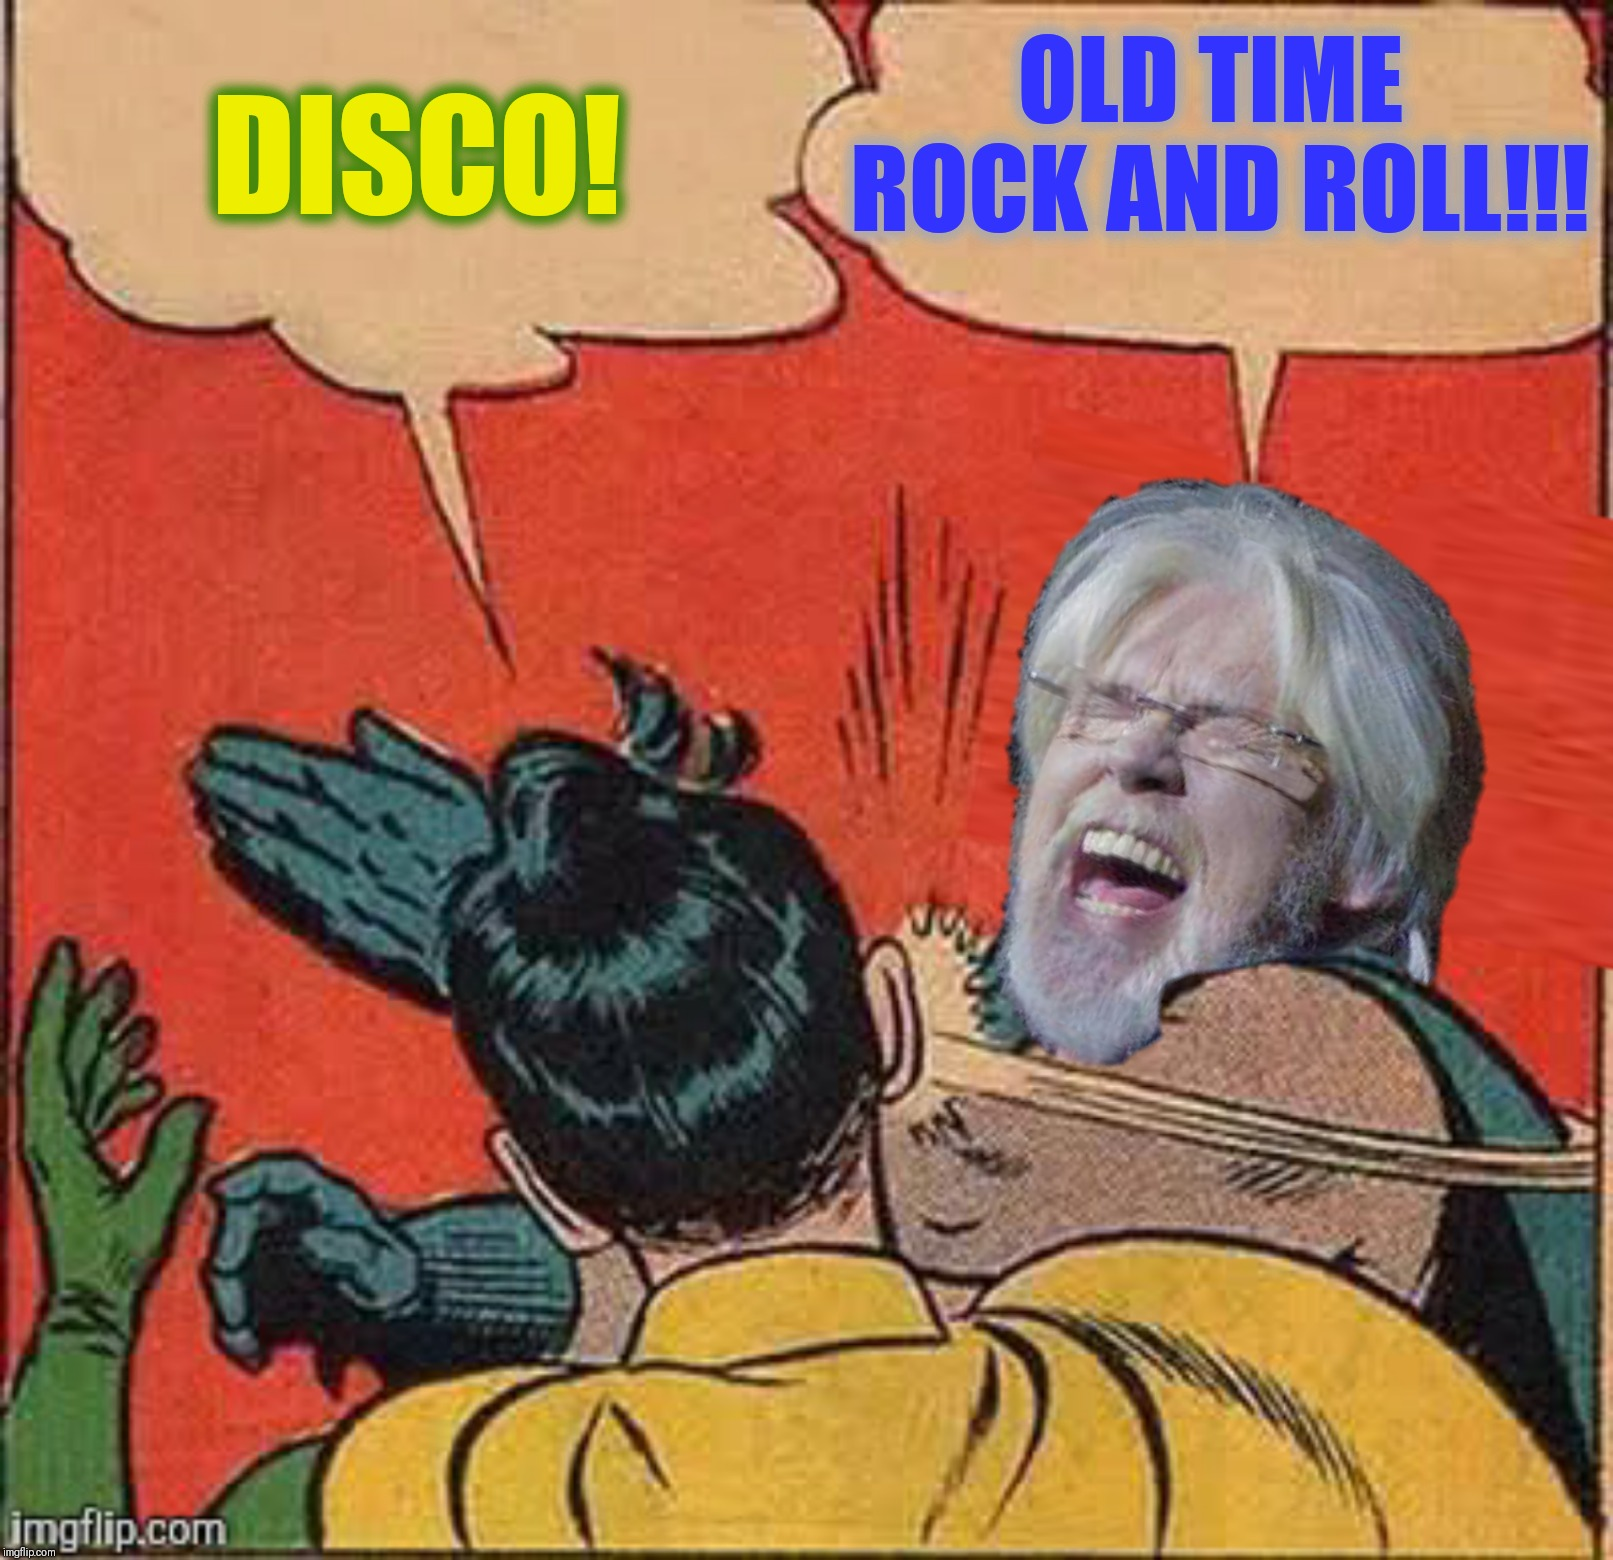 Bad Photoshop Sunday presents:  Just take those old records off the shelf! | DISCO! OLD TIME ROCK AND ROLL!!! | image tagged in bad photoshop sunday,bob seger,batman slapping robin,old time rock and roll | made w/ Imgflip meme maker